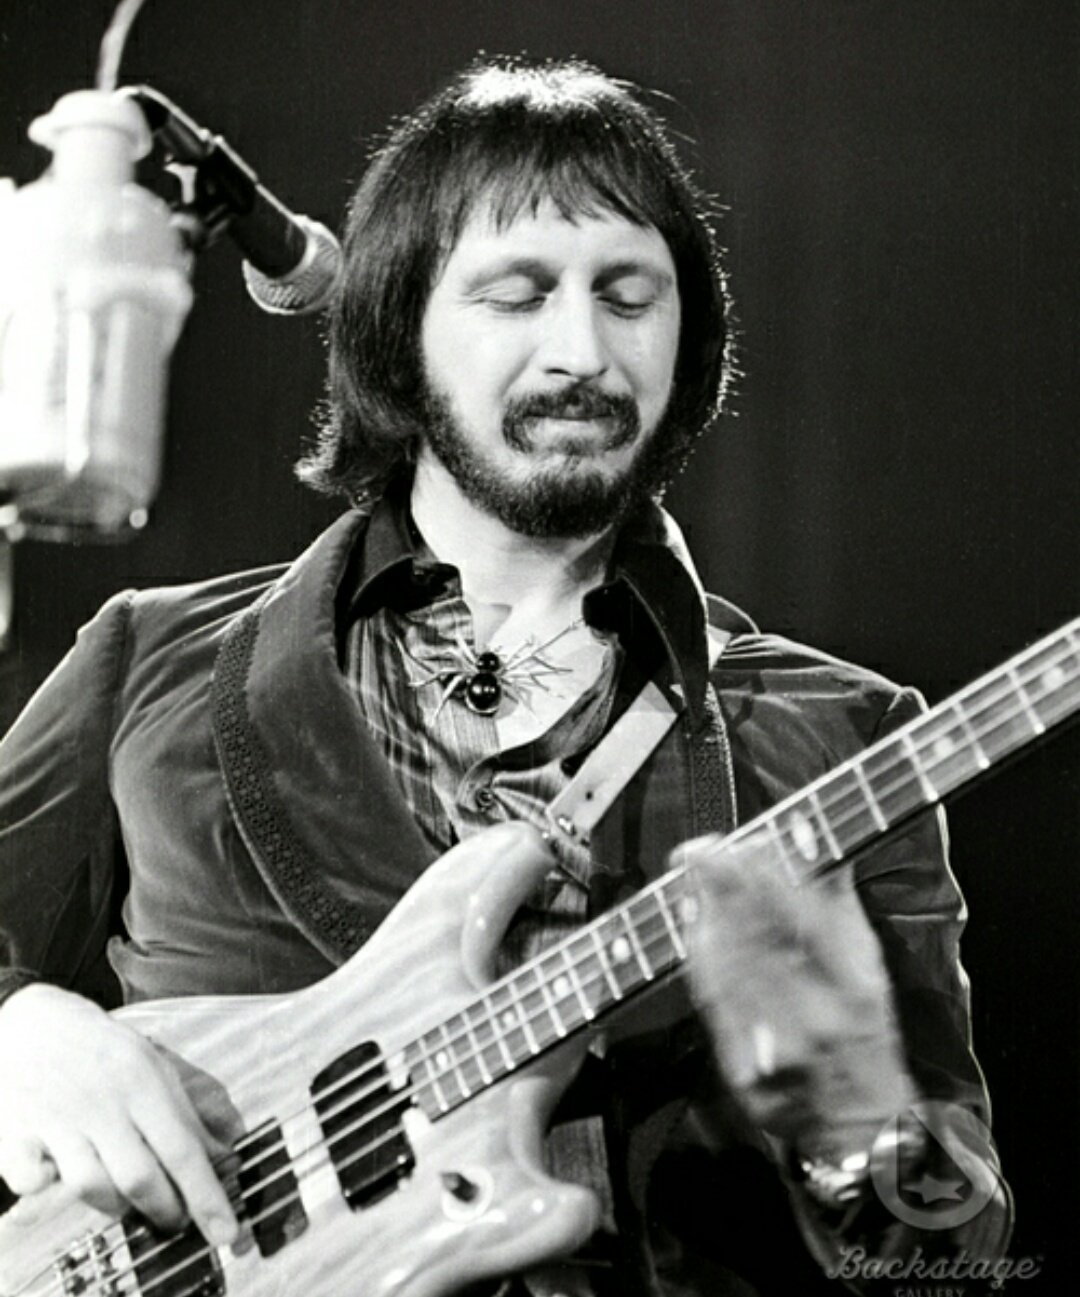 Also happy birthday to John Entwistle! One of the greatest bassists of all time. He would\ve turned 73 today